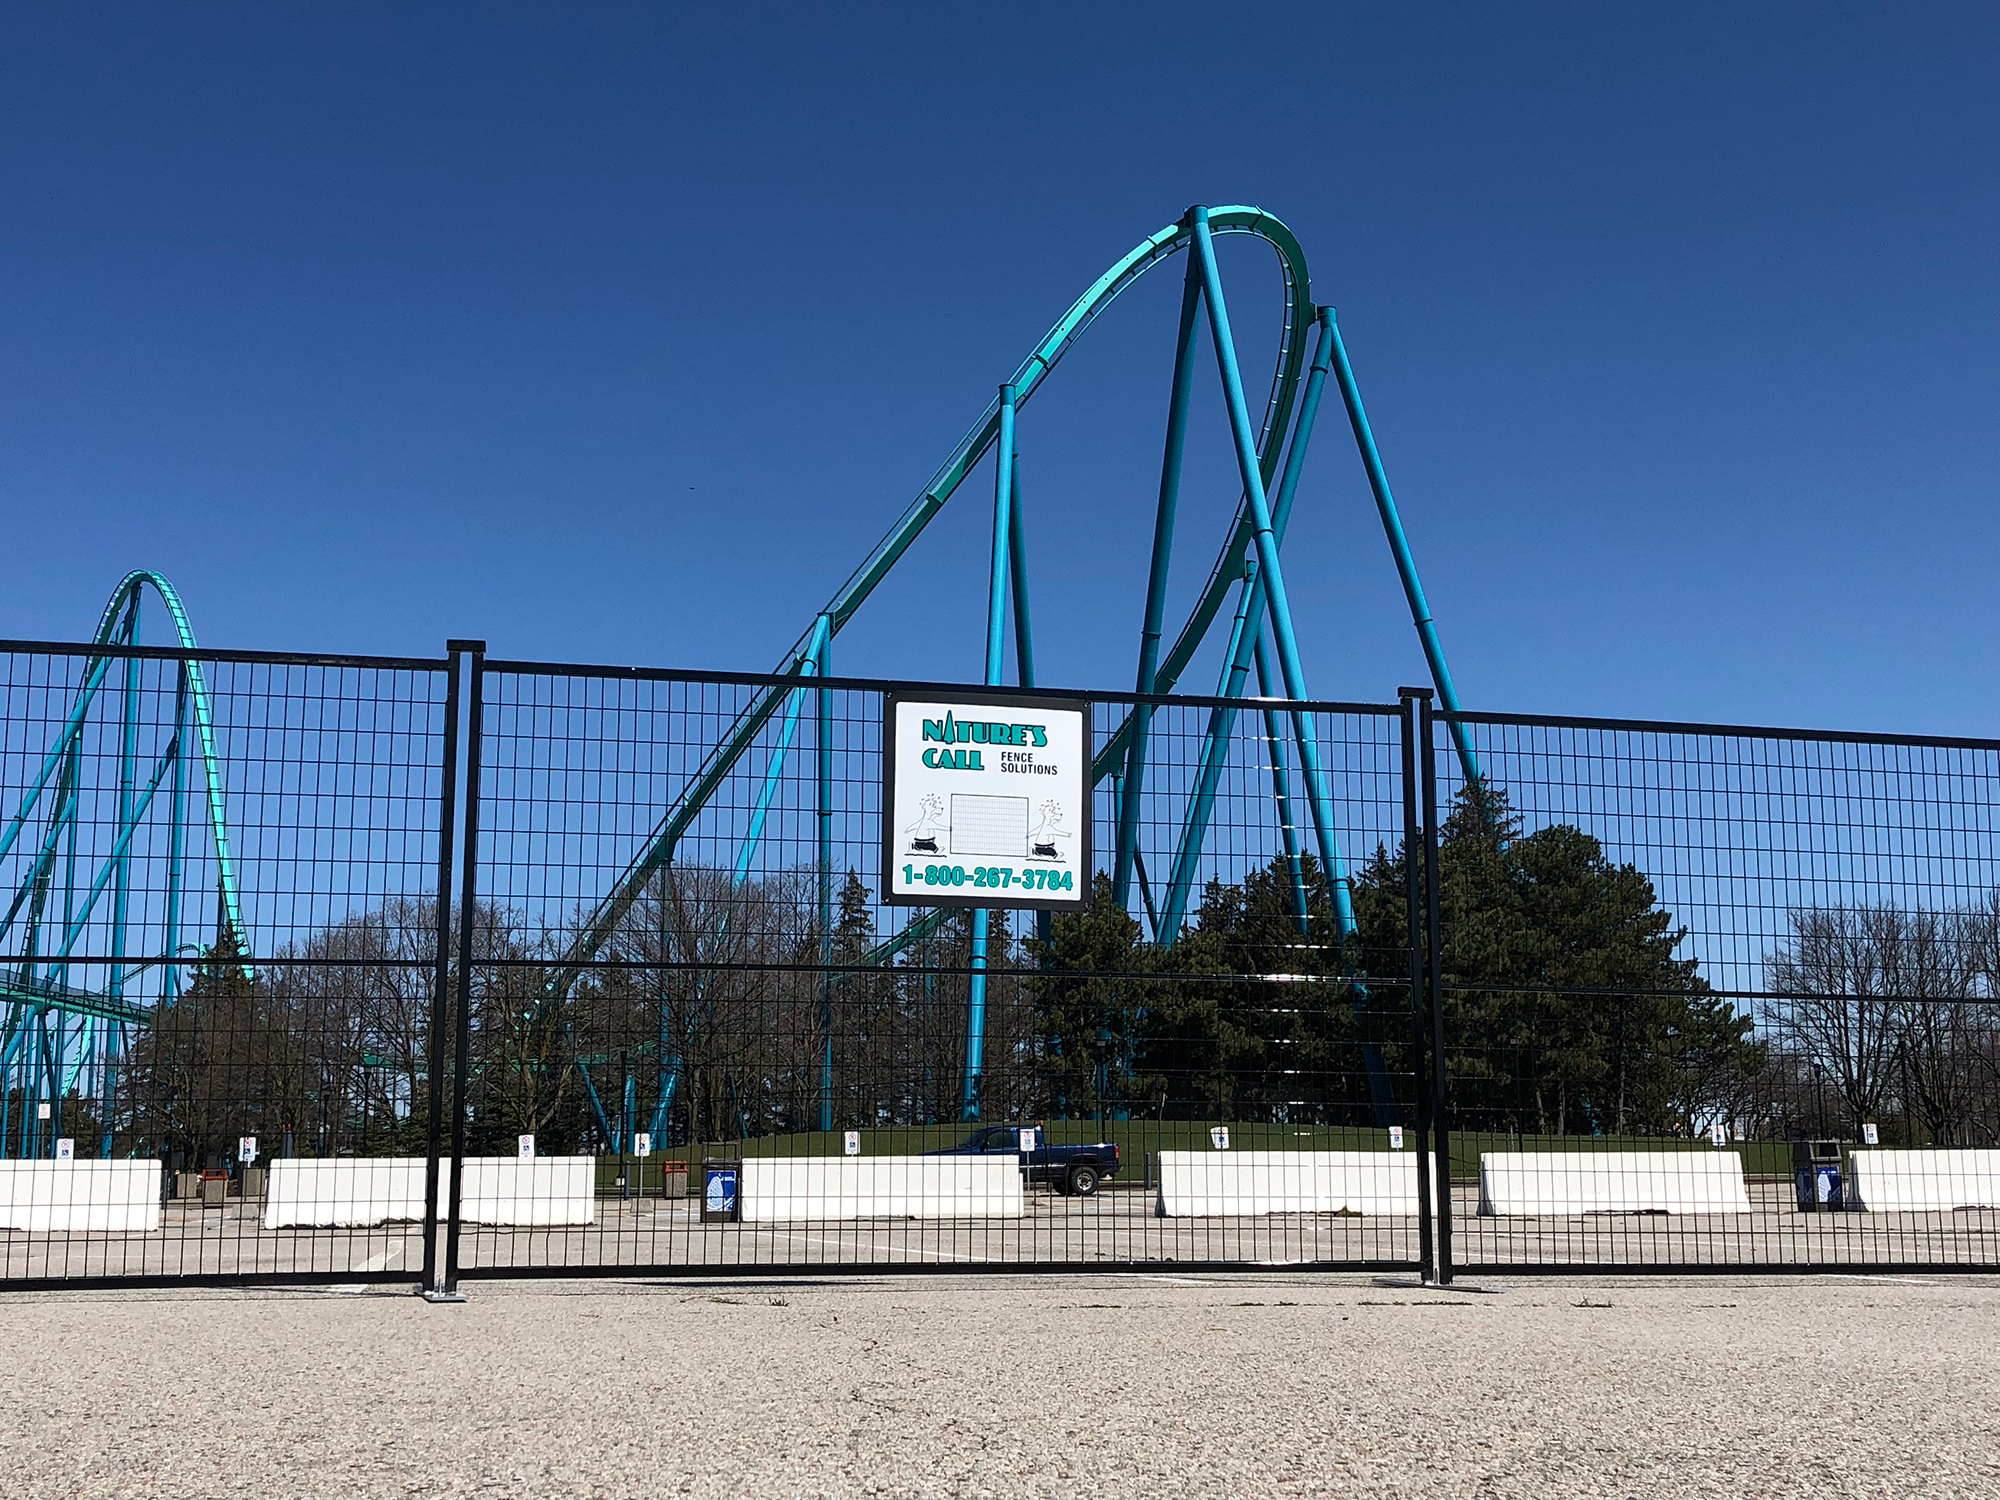 A 6-foot tall fence surrounds a roller coaster at Canada's Wonderland